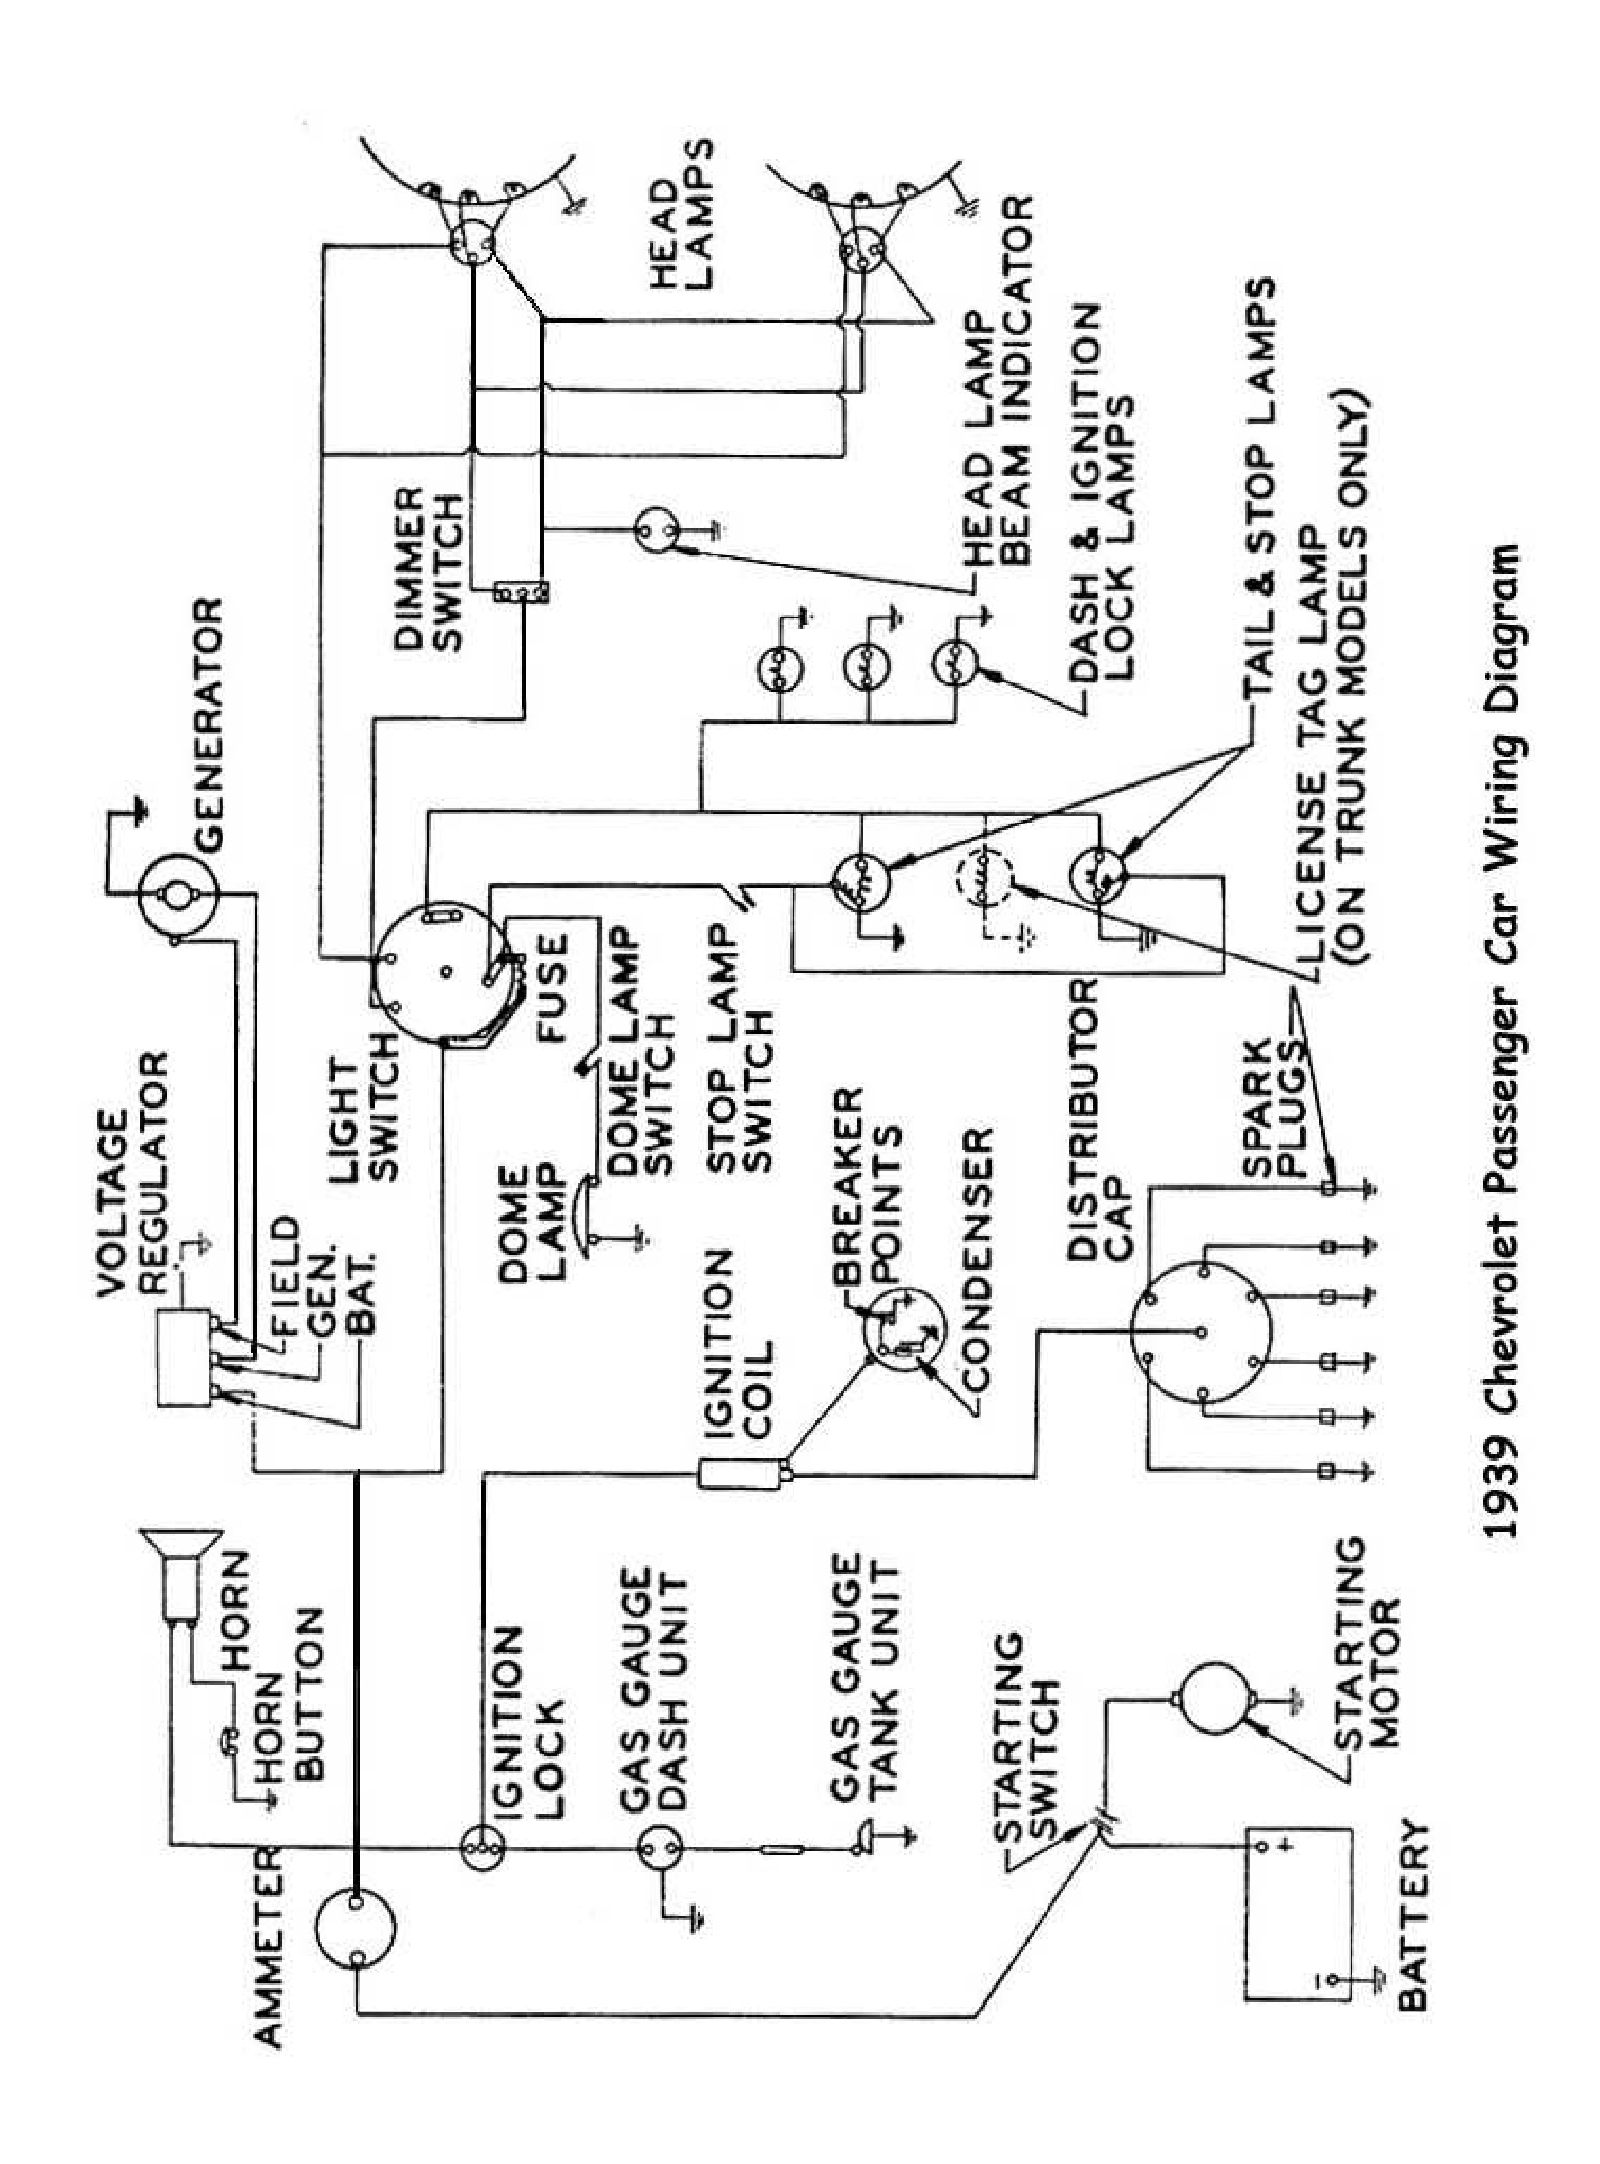 Wiring on 1949 Cadillac Wiring Diagram